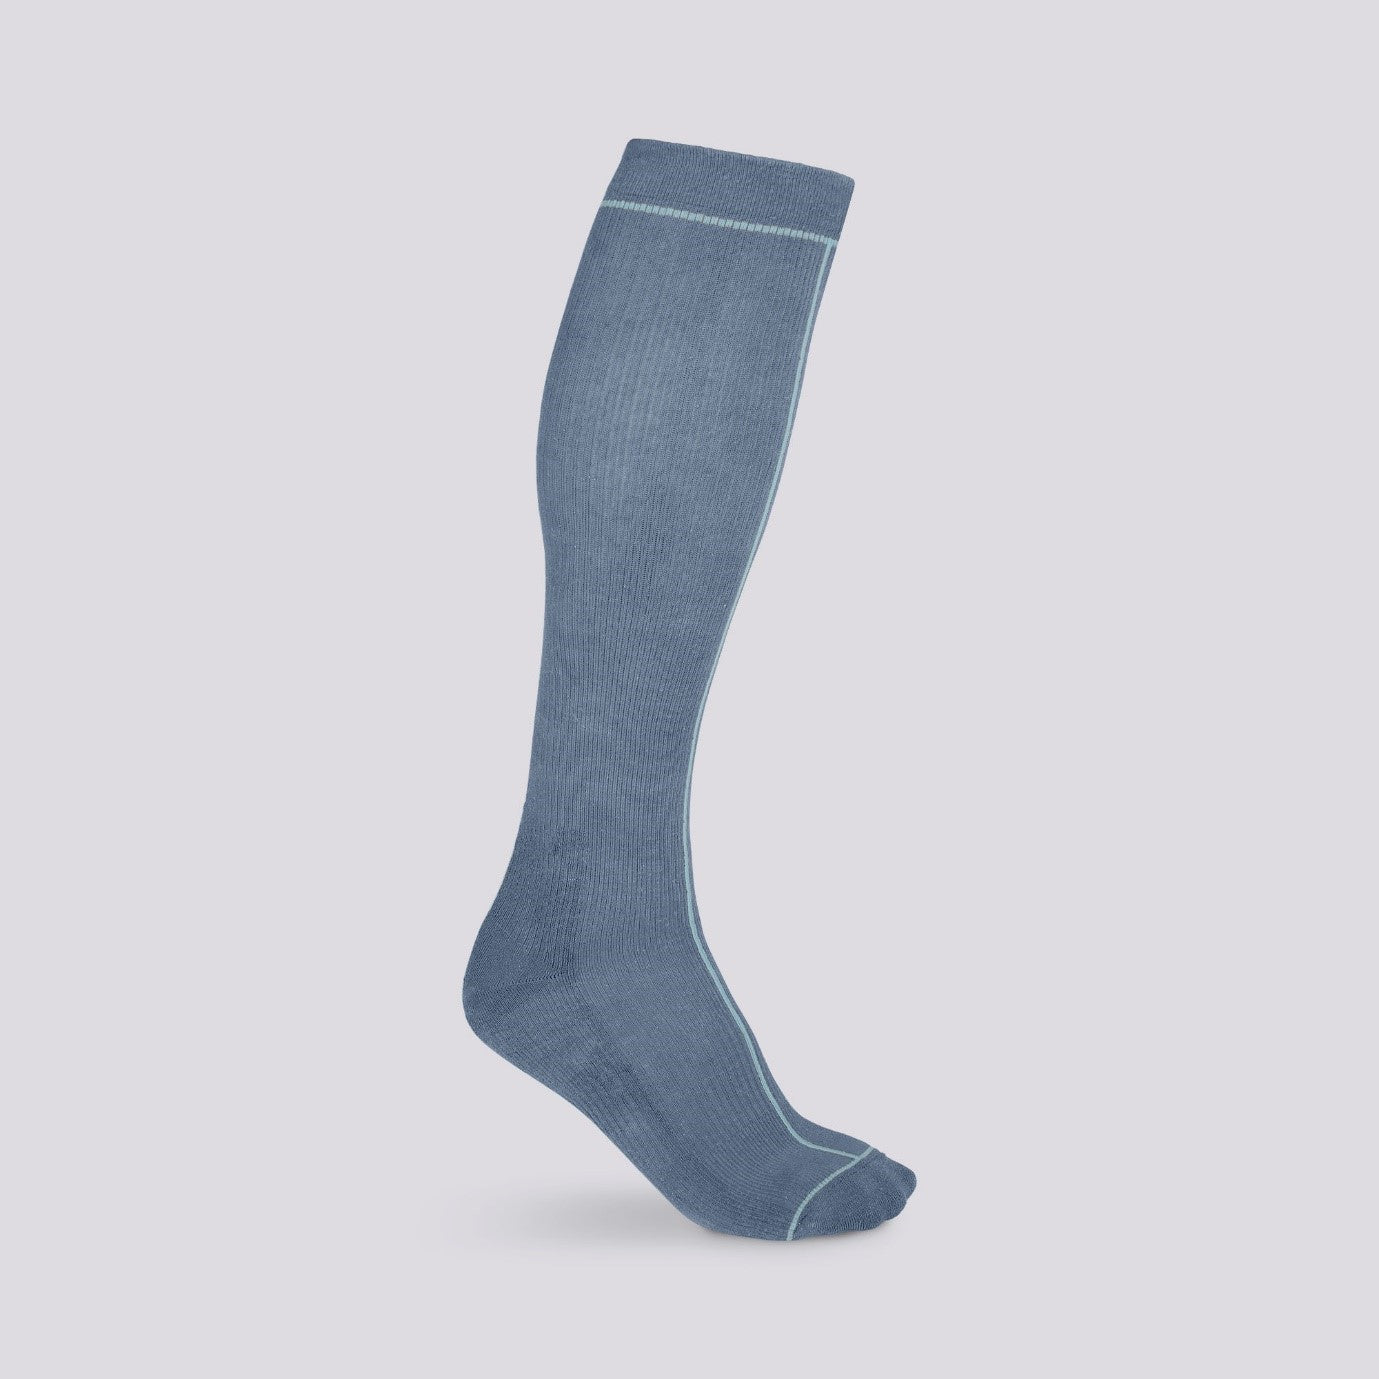 Hemp Compression Sock, Knee High, Ensign Blue with Line Pattern Colour Sea Angel, Durable Breathable Antibacterial, Sustainable Fashion Minimal Design | SHIN JARDBO